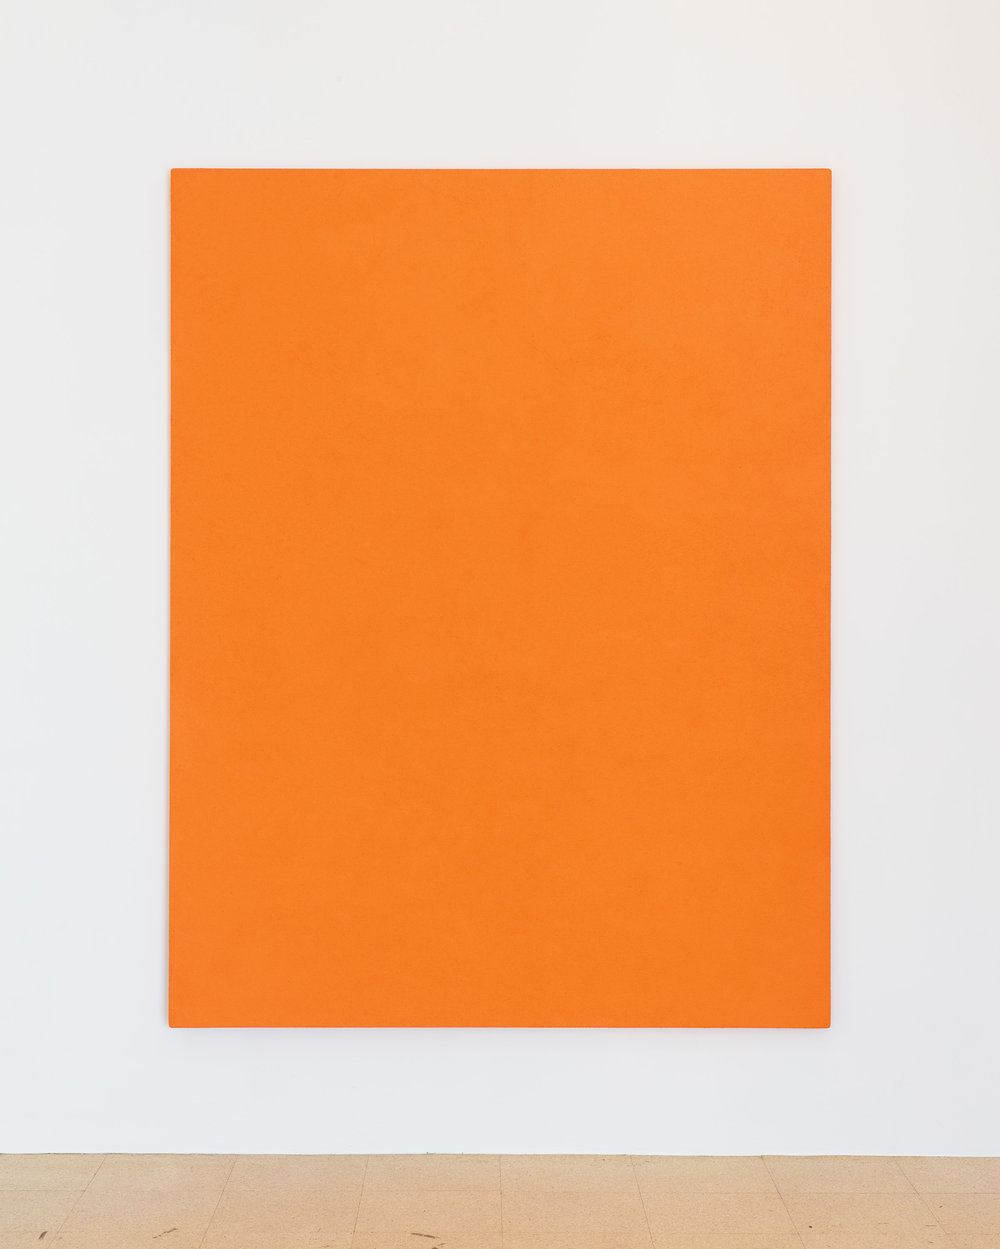 "SUPERFLEX, ""SUPERFLEX on canvas,"" 1995/2013, Dry orange pigment, polymer medium on cotton over plywood, 78.35 x 60.24 inches, Edition of 3."